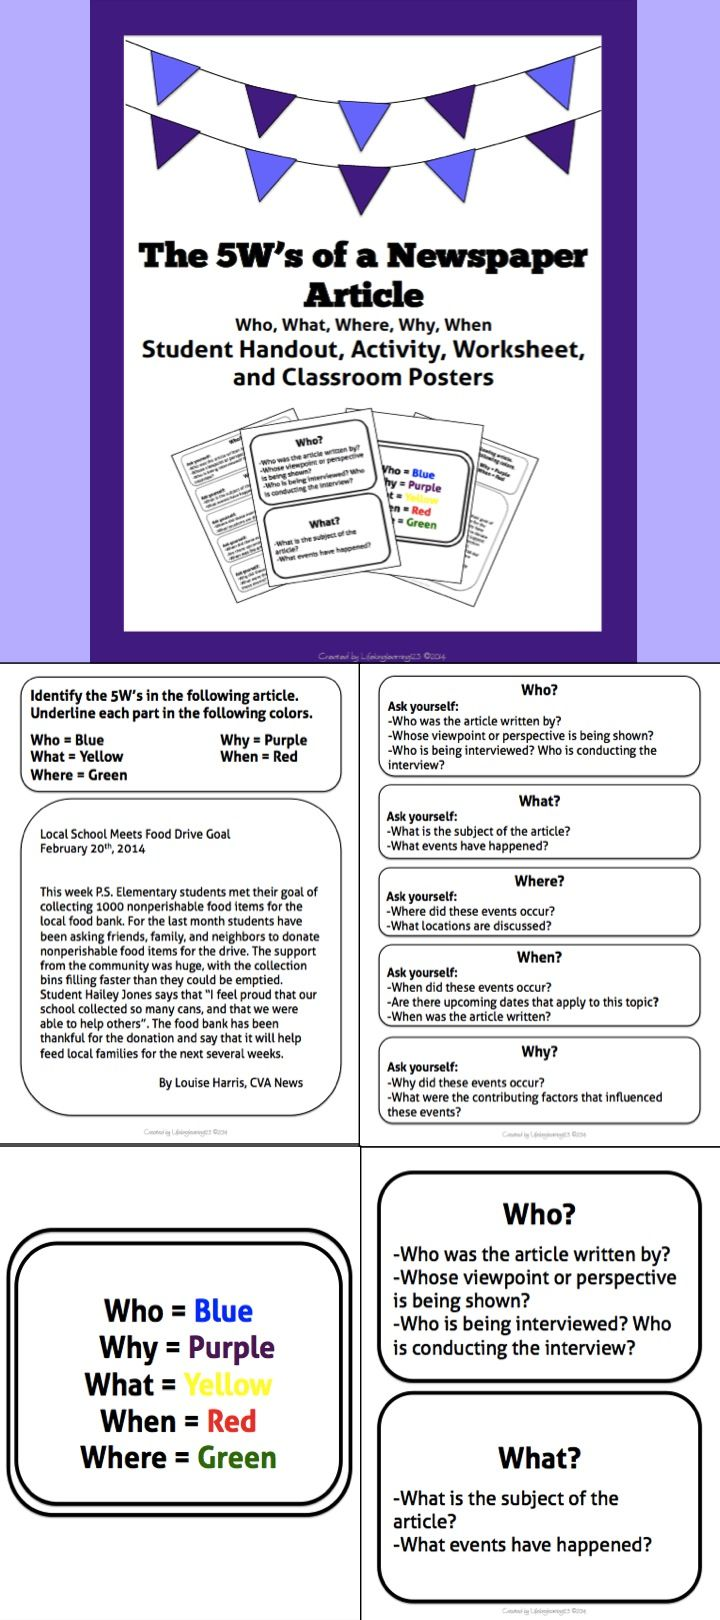 worksheet News Report Worksheet the 5ws of a newspaper article student activity handout classroom posters